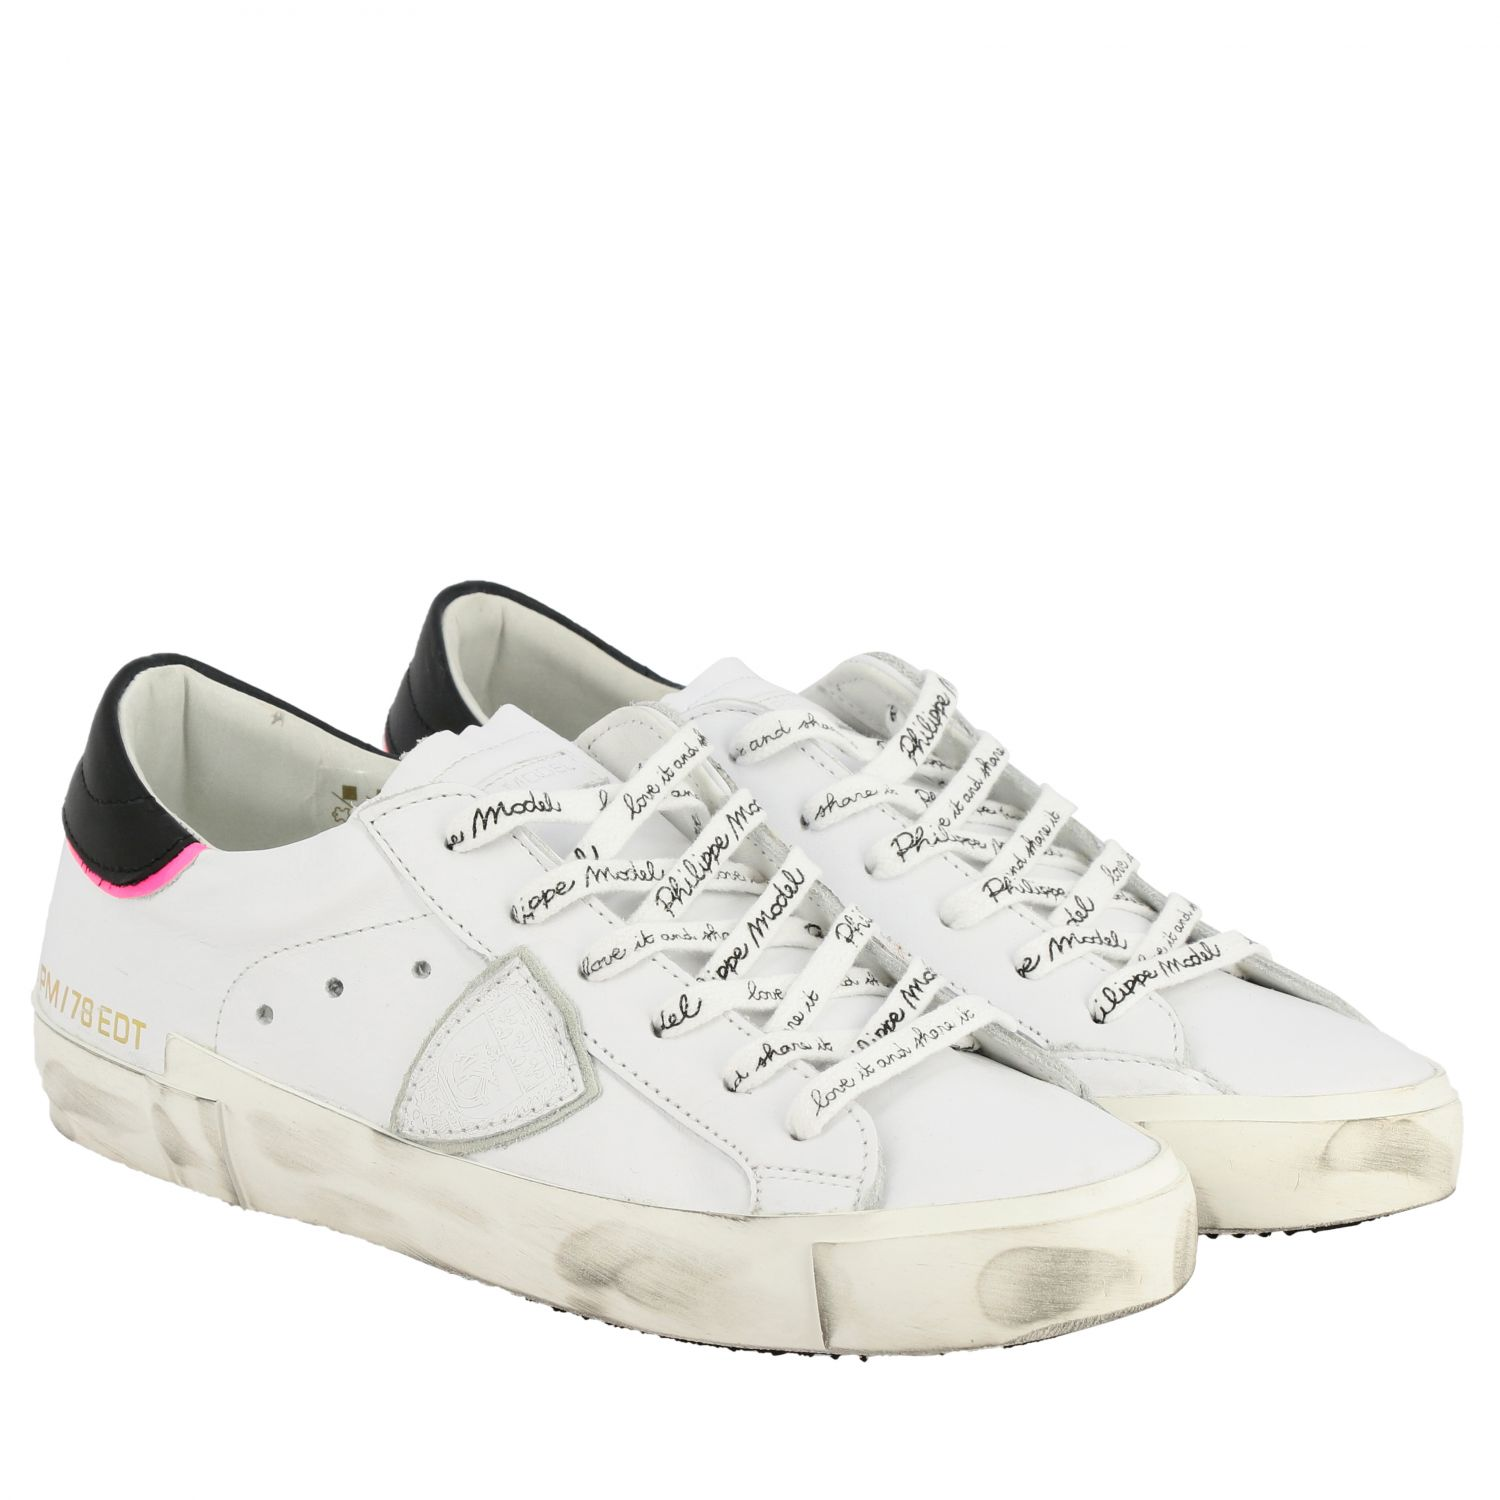 Sneakers women Philippe Model white 2